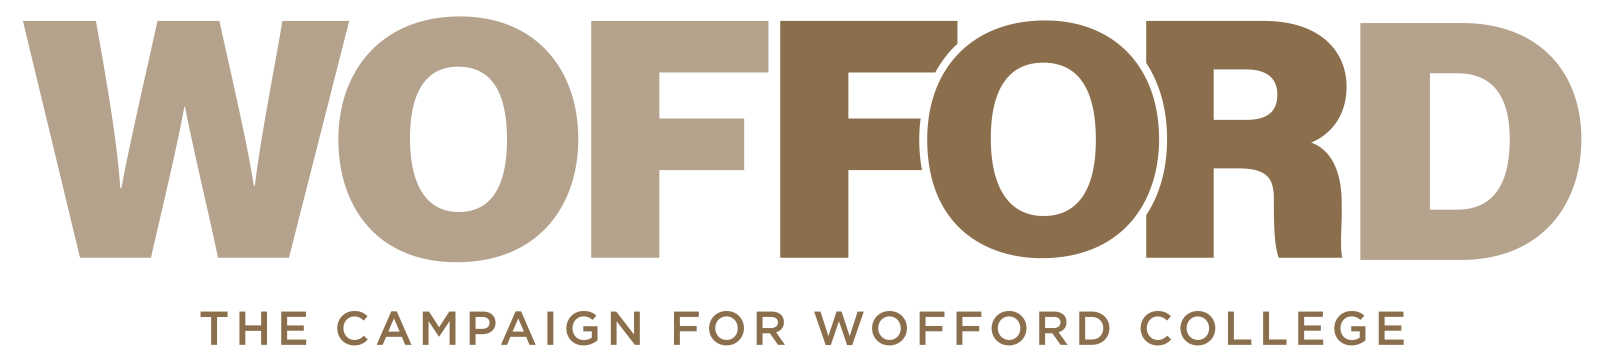 For Wofford logo